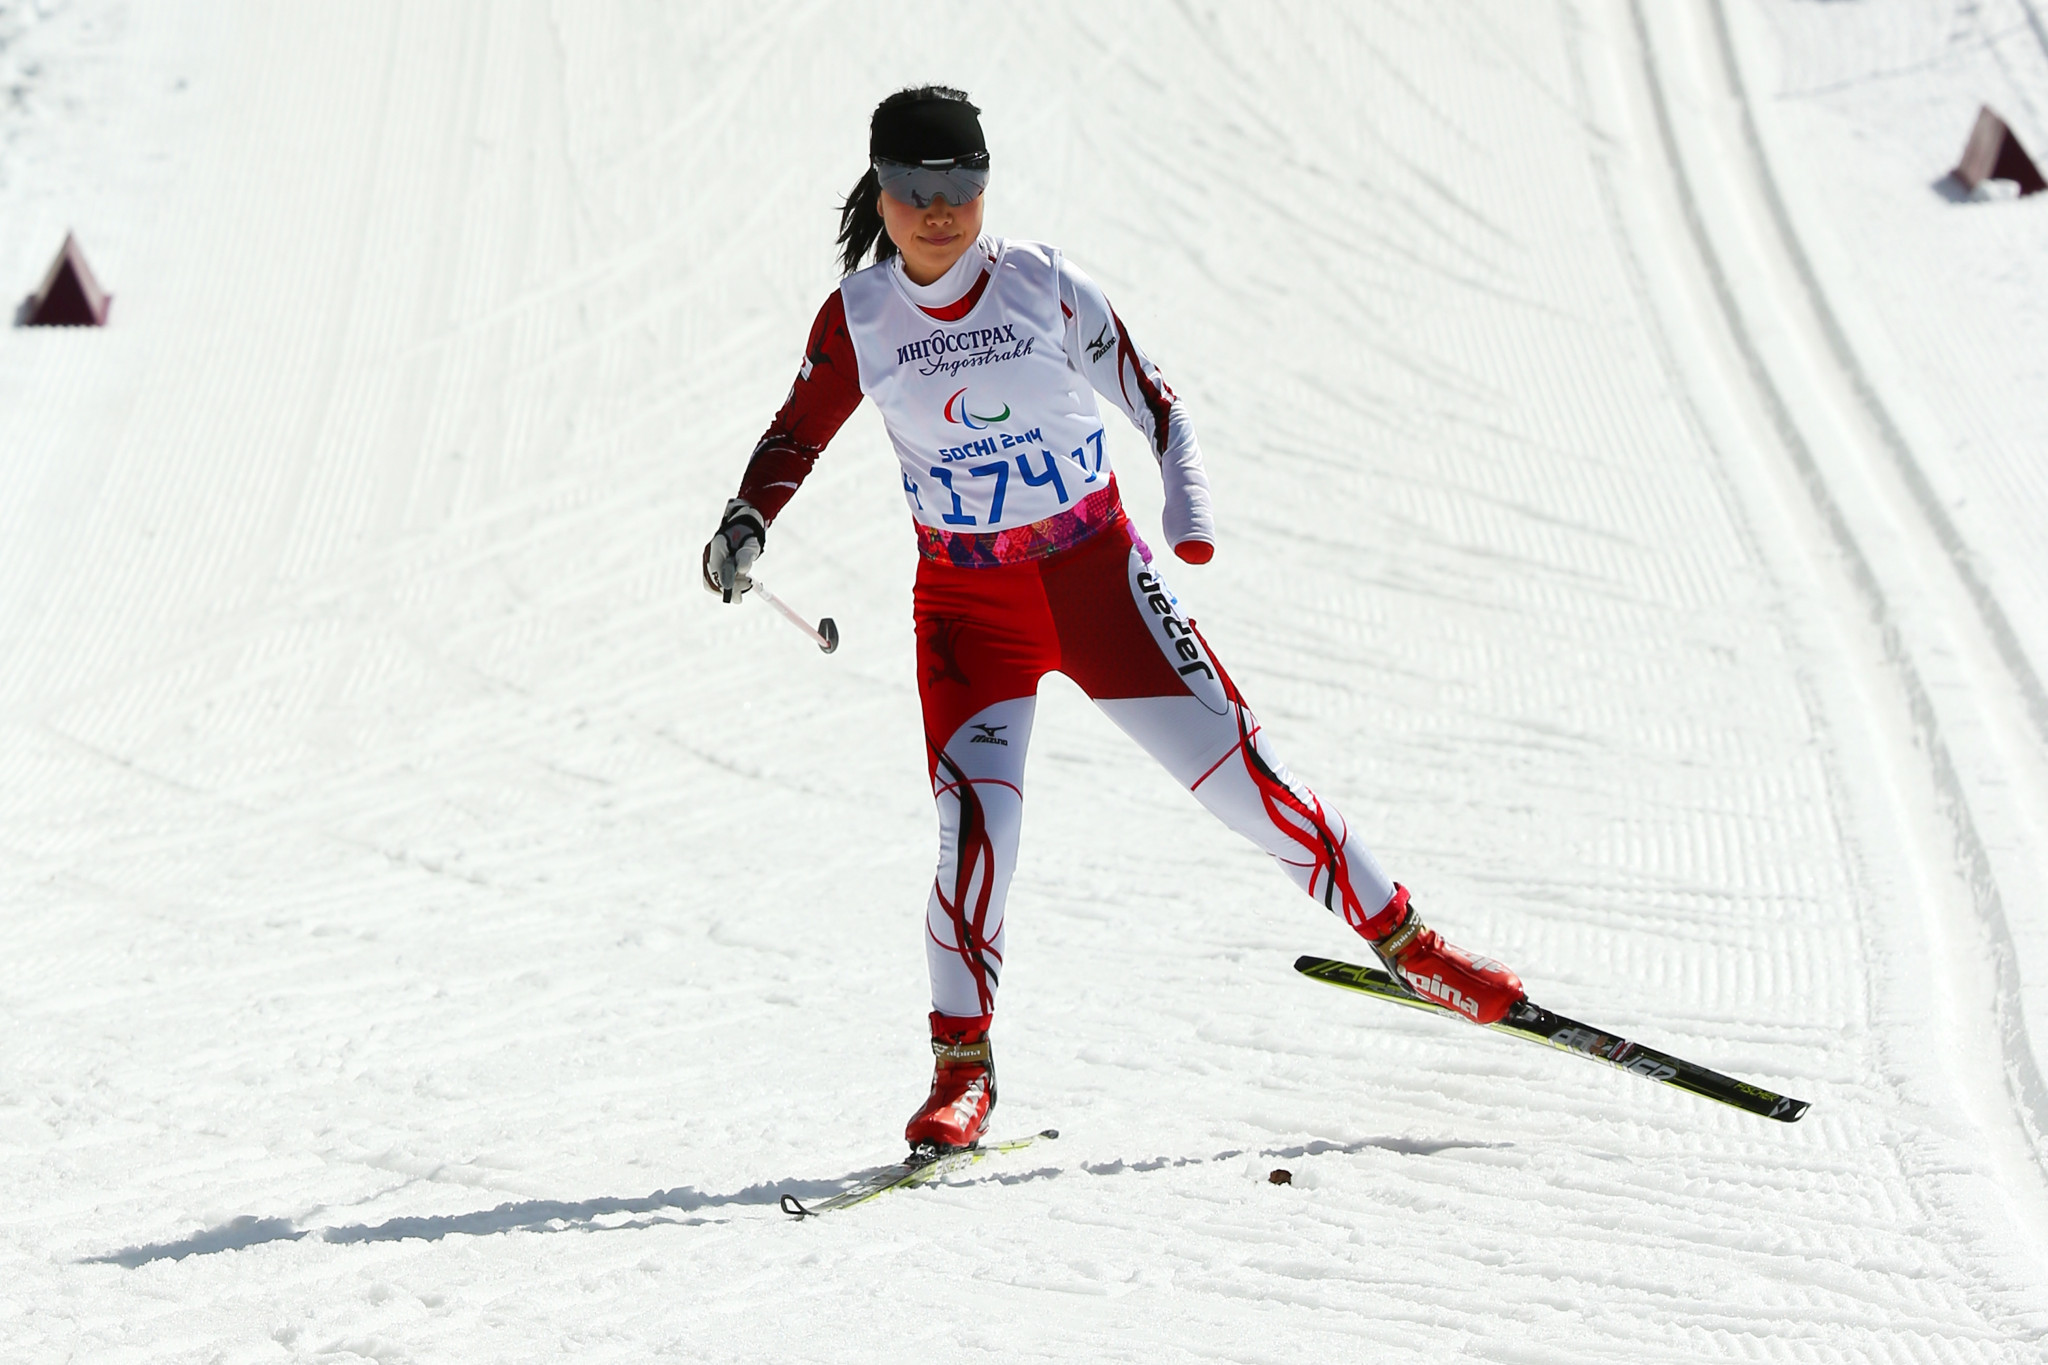 Shoko Ota is a two-time Paralympic medallist on skis ©Getty Images